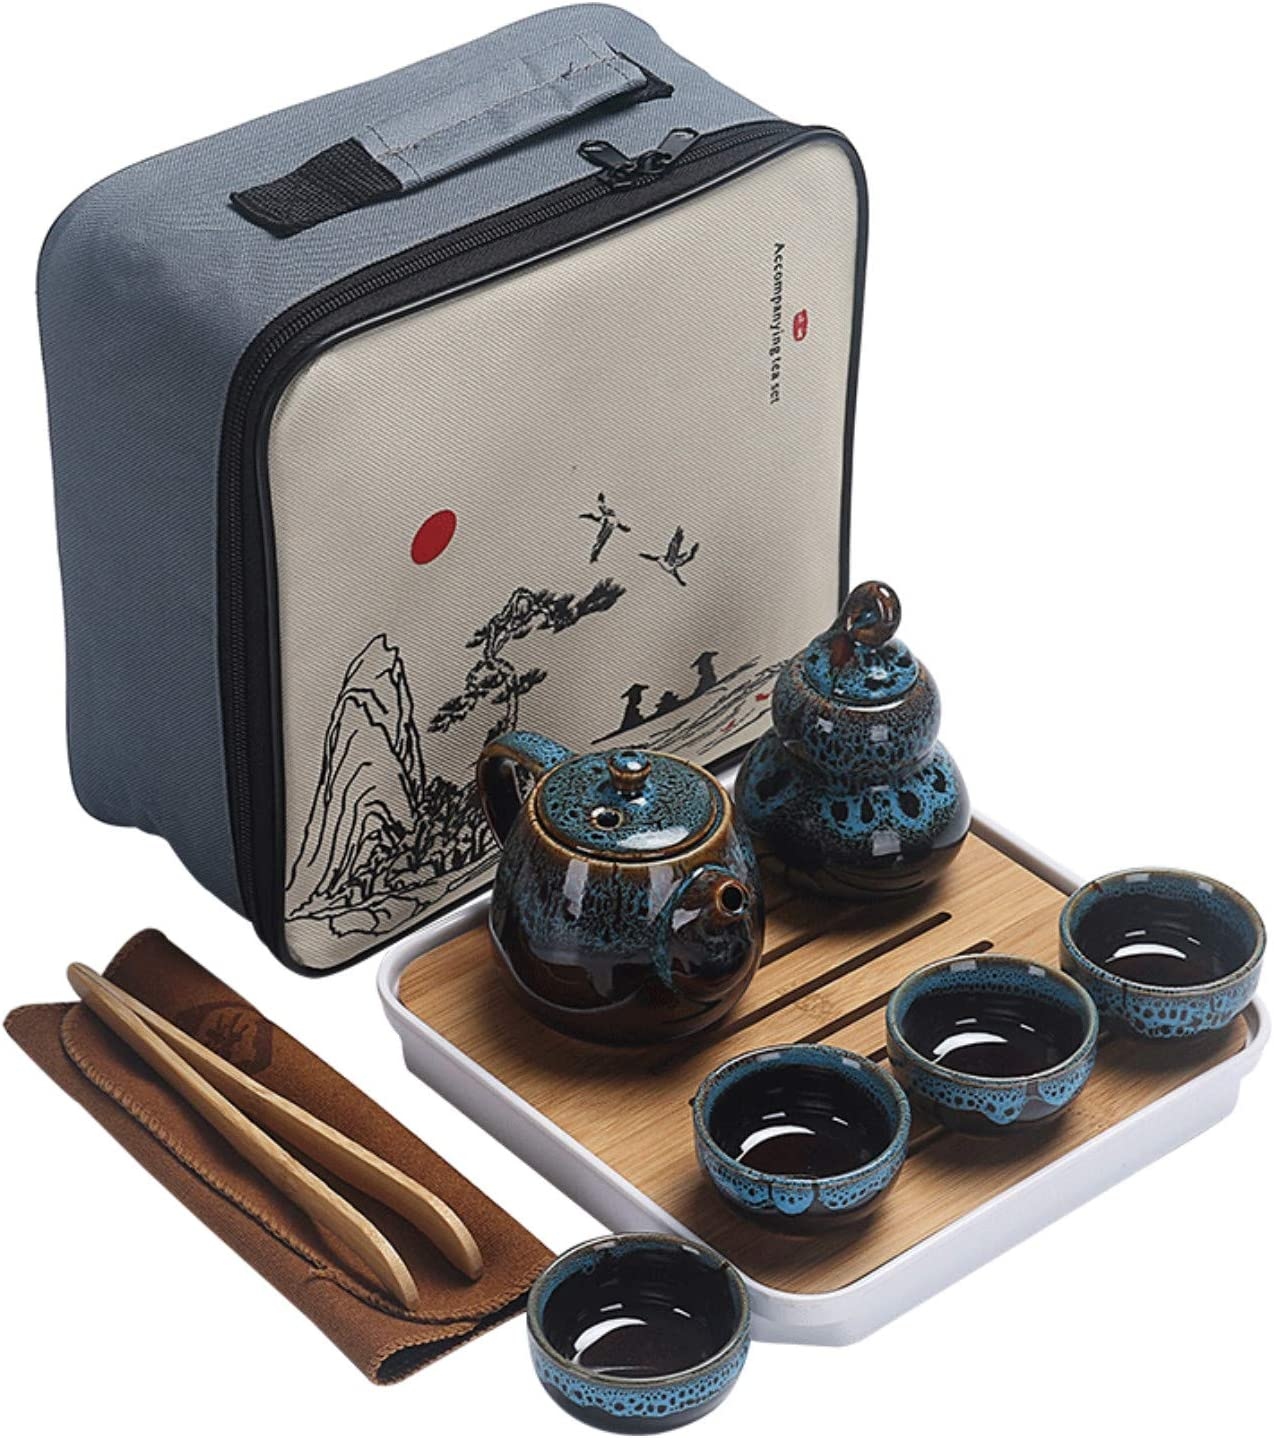 Ceramic Kungfu Tea Set,Portable Travel Tea Set with Teapot,Teacups,Tea Canister,Tea Tray and Travel Bag,Suitable for Travel, Home,Outdoor and Office